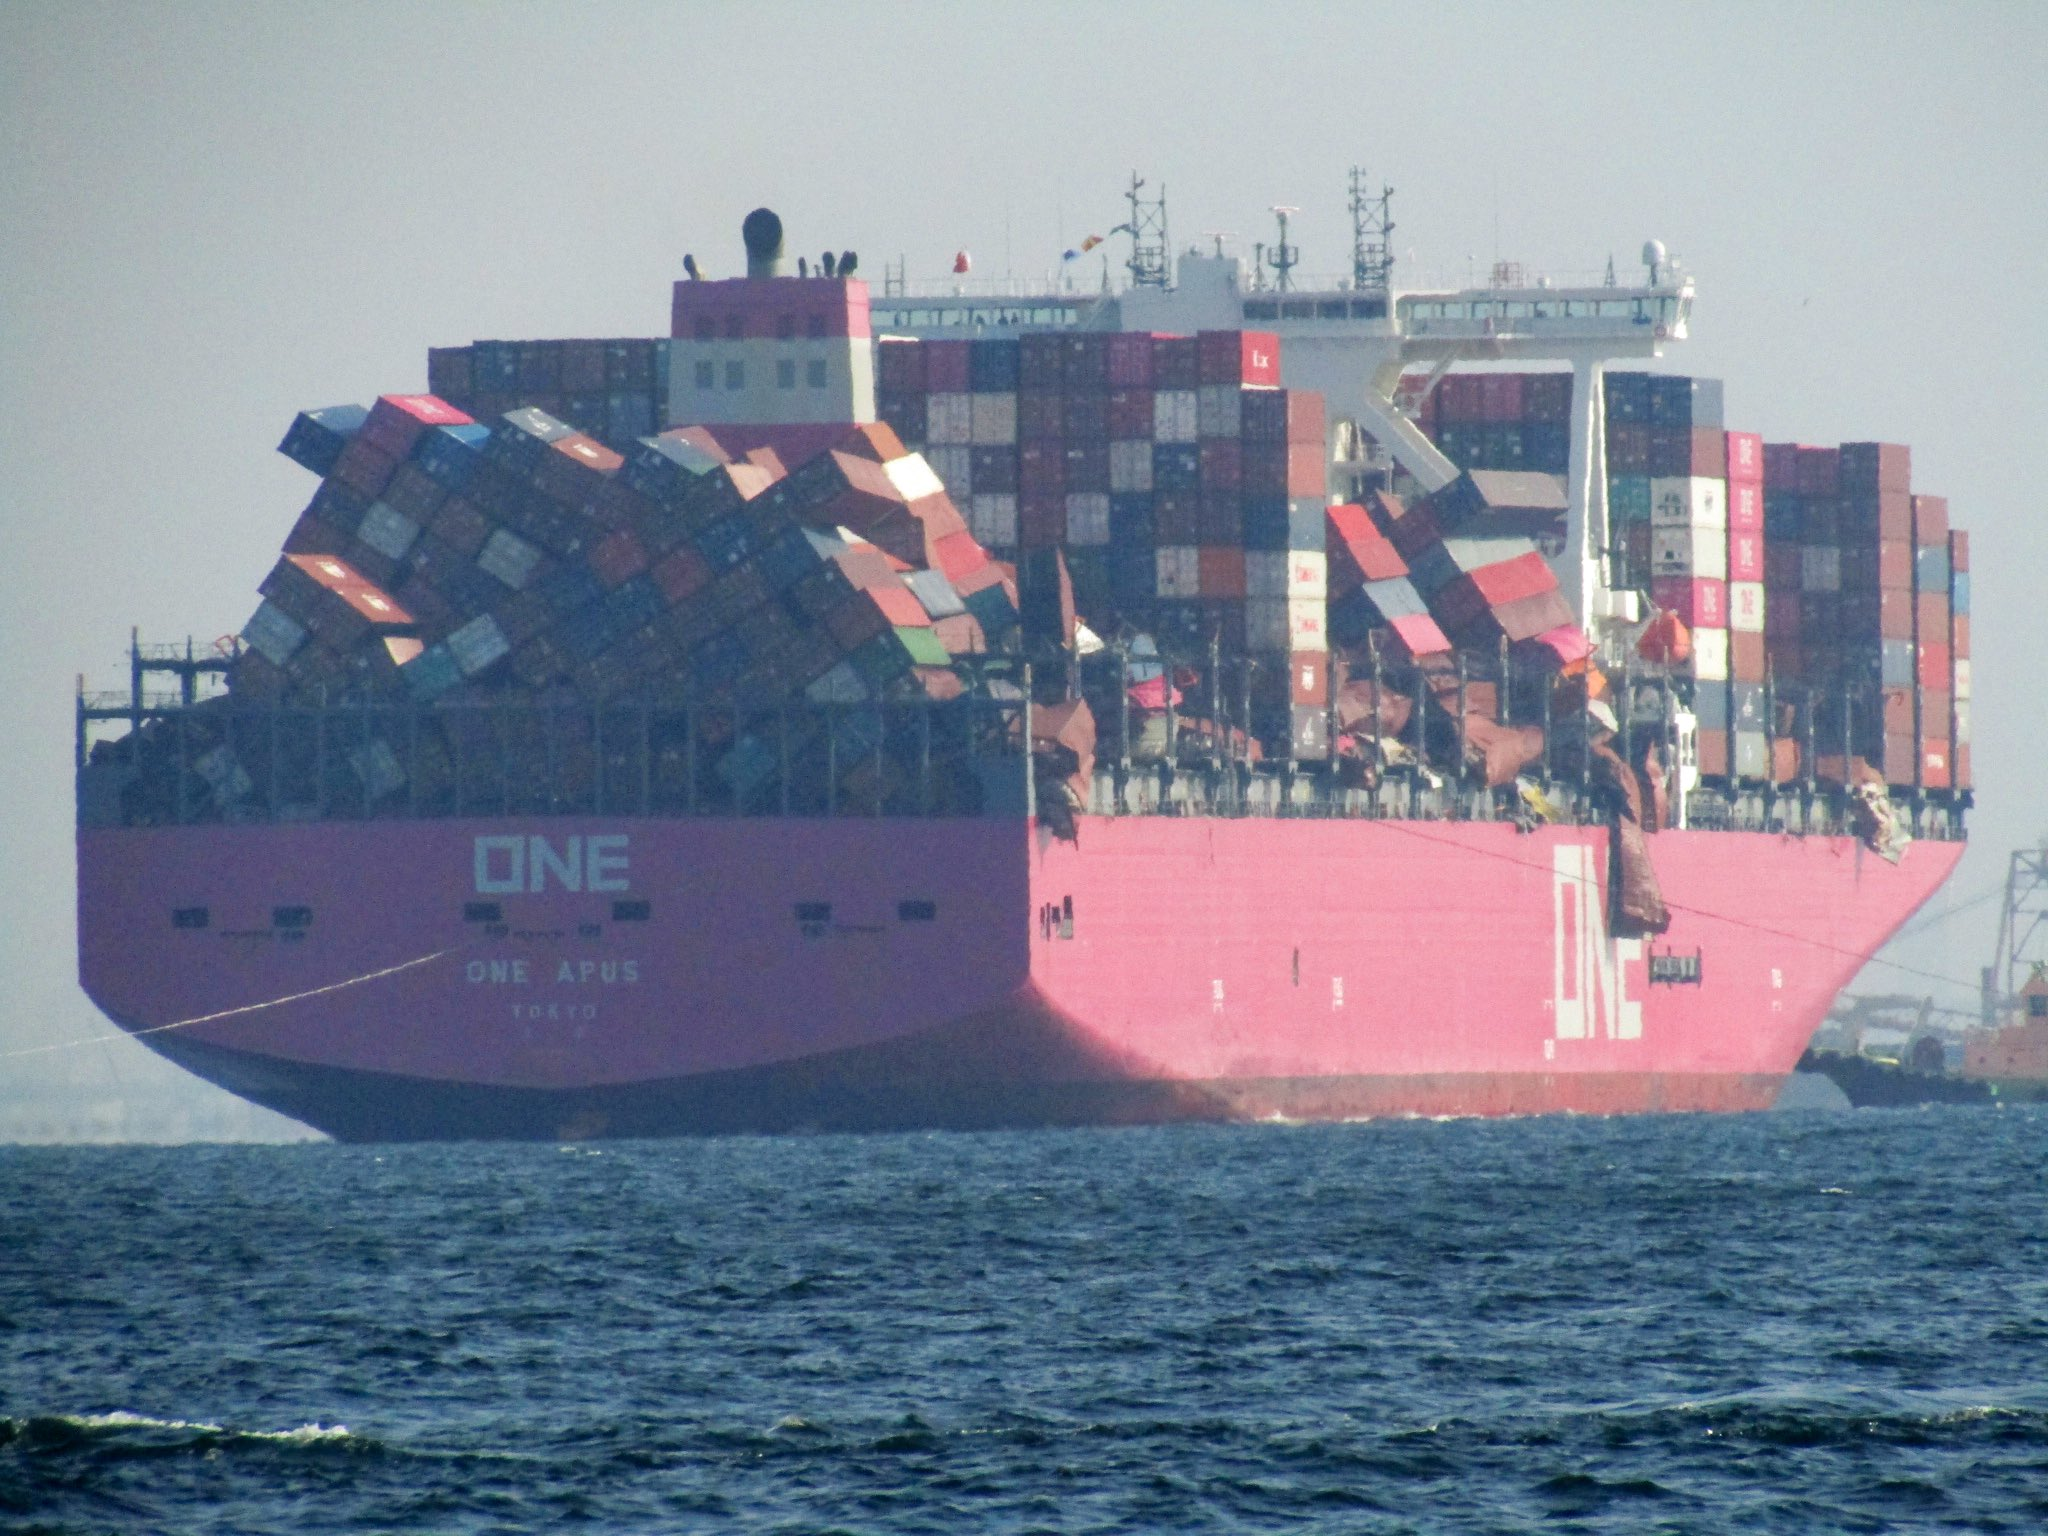 These are the biggest disasters involving container ships in the